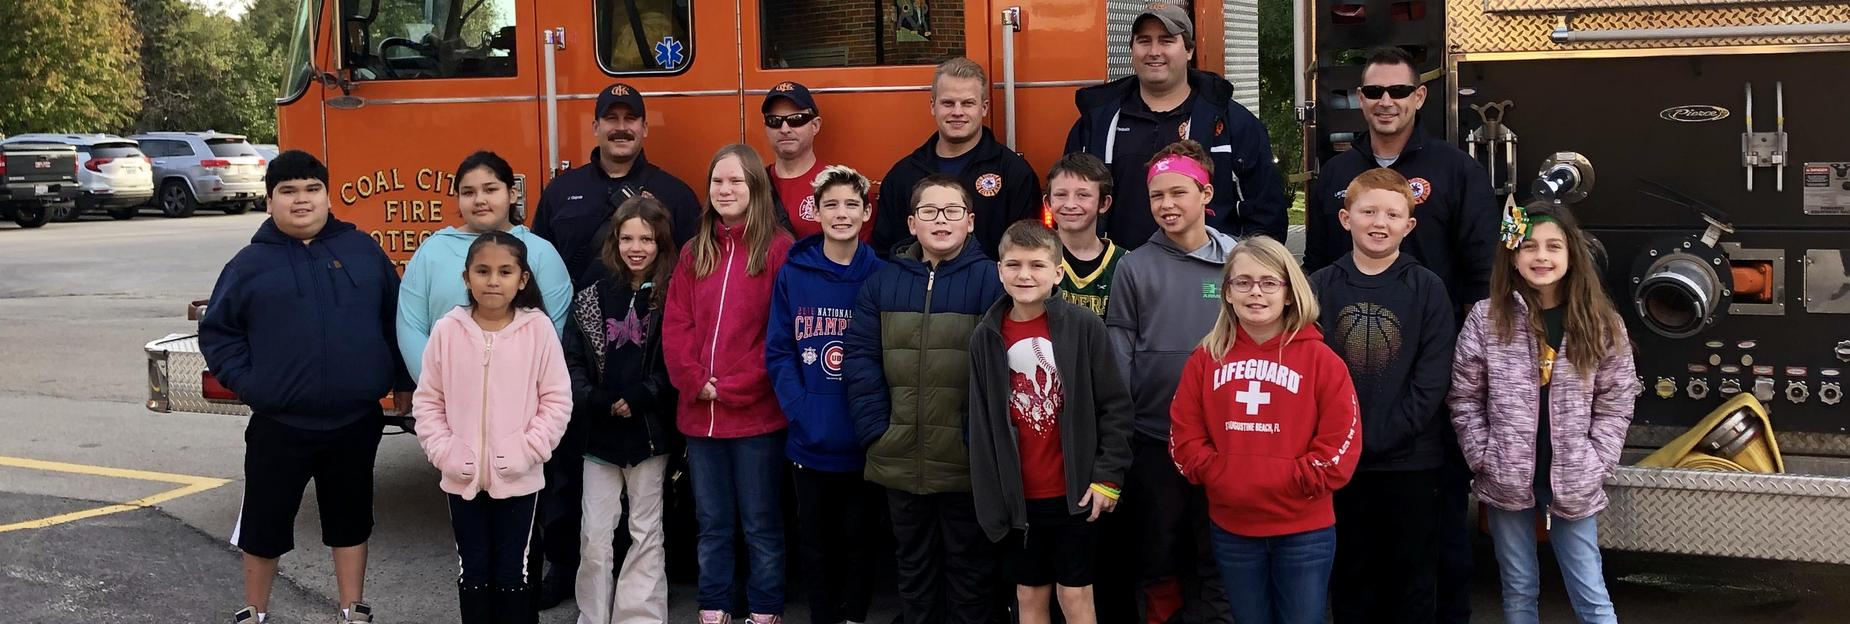 Group at the firehouse